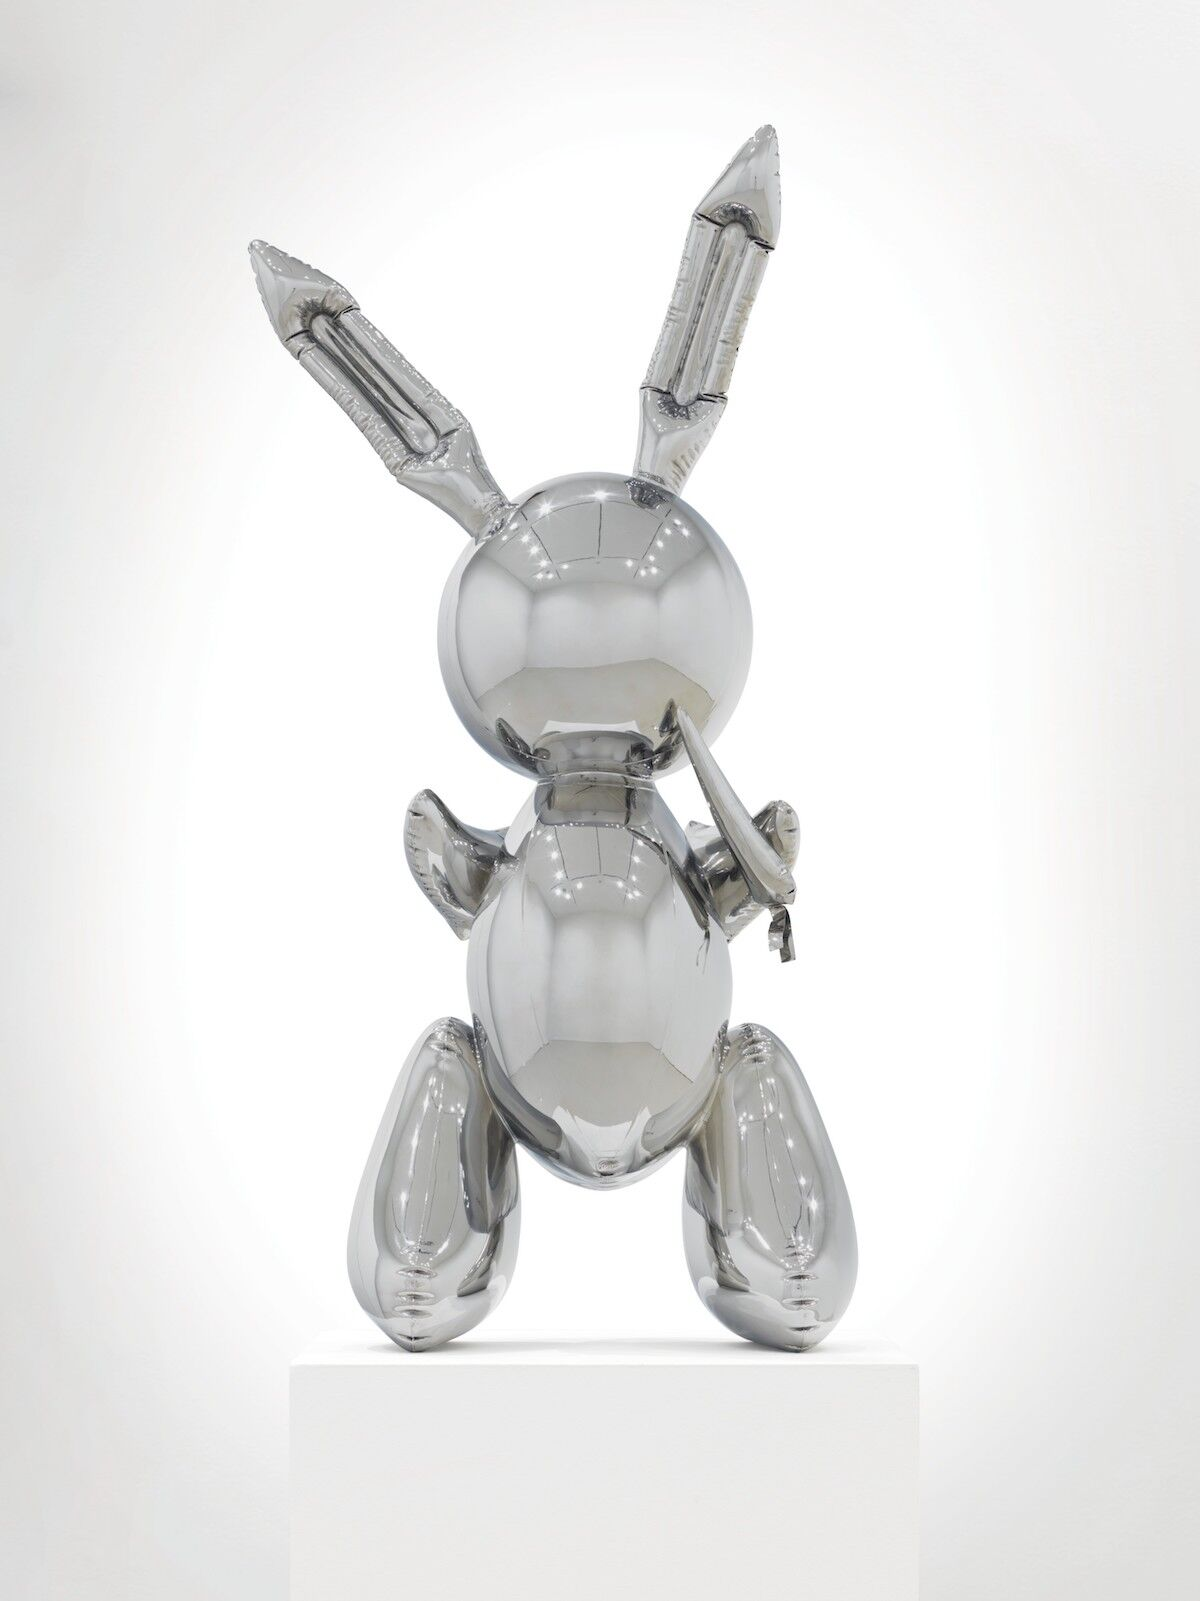 Jeff Koons, Rabbit, 1986, stainless steel. This work is number two from an edition of three plus one artist's proof. Est. $50 million–$70 million. Courtesy Christie's Images Ltd. 2019.